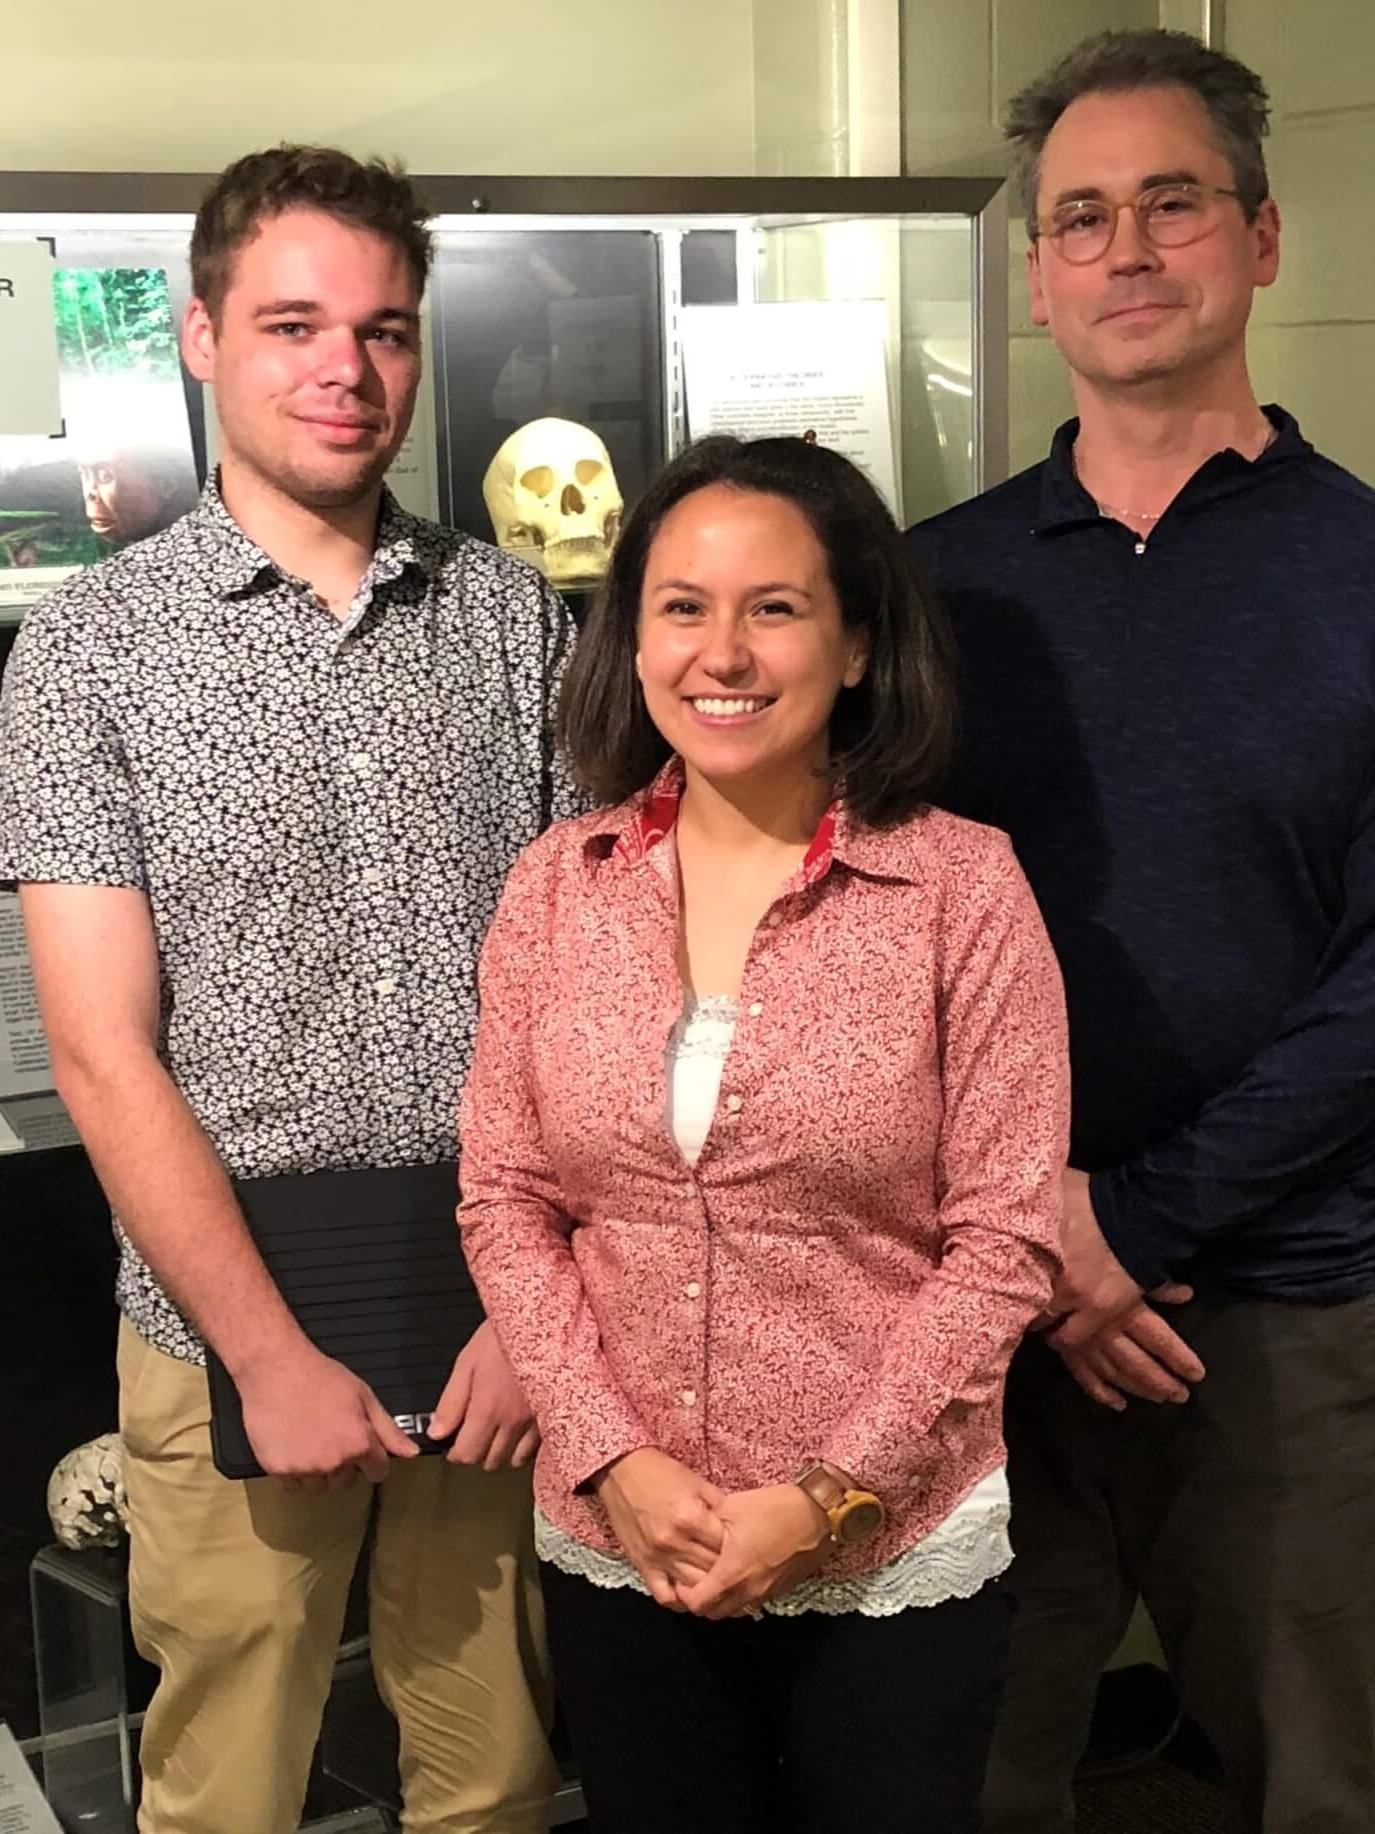 Nick McLean, Jesse Driver, and Mark Shriver created a new AR app to be used in Shriver's ANTH 021 lab